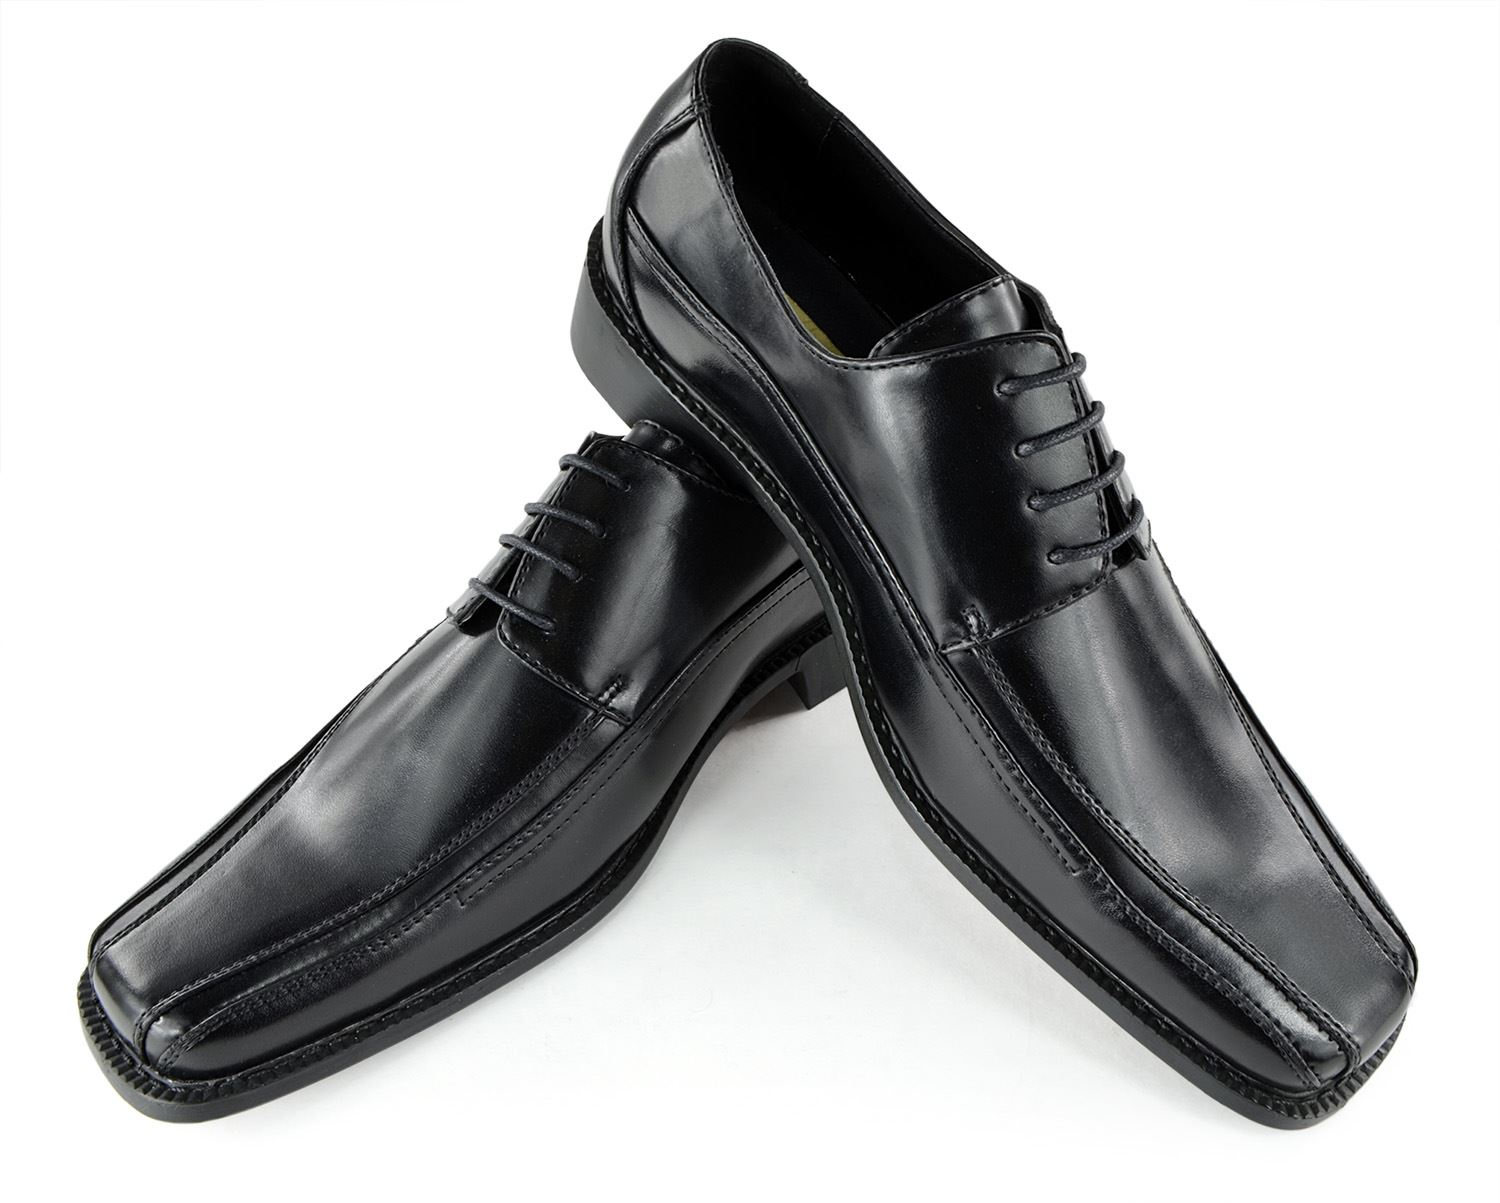 Moda Di Raza-Mens Bike Toe Wedding Oxford Dress Shoes -Black - 5795/ Size: 10.5